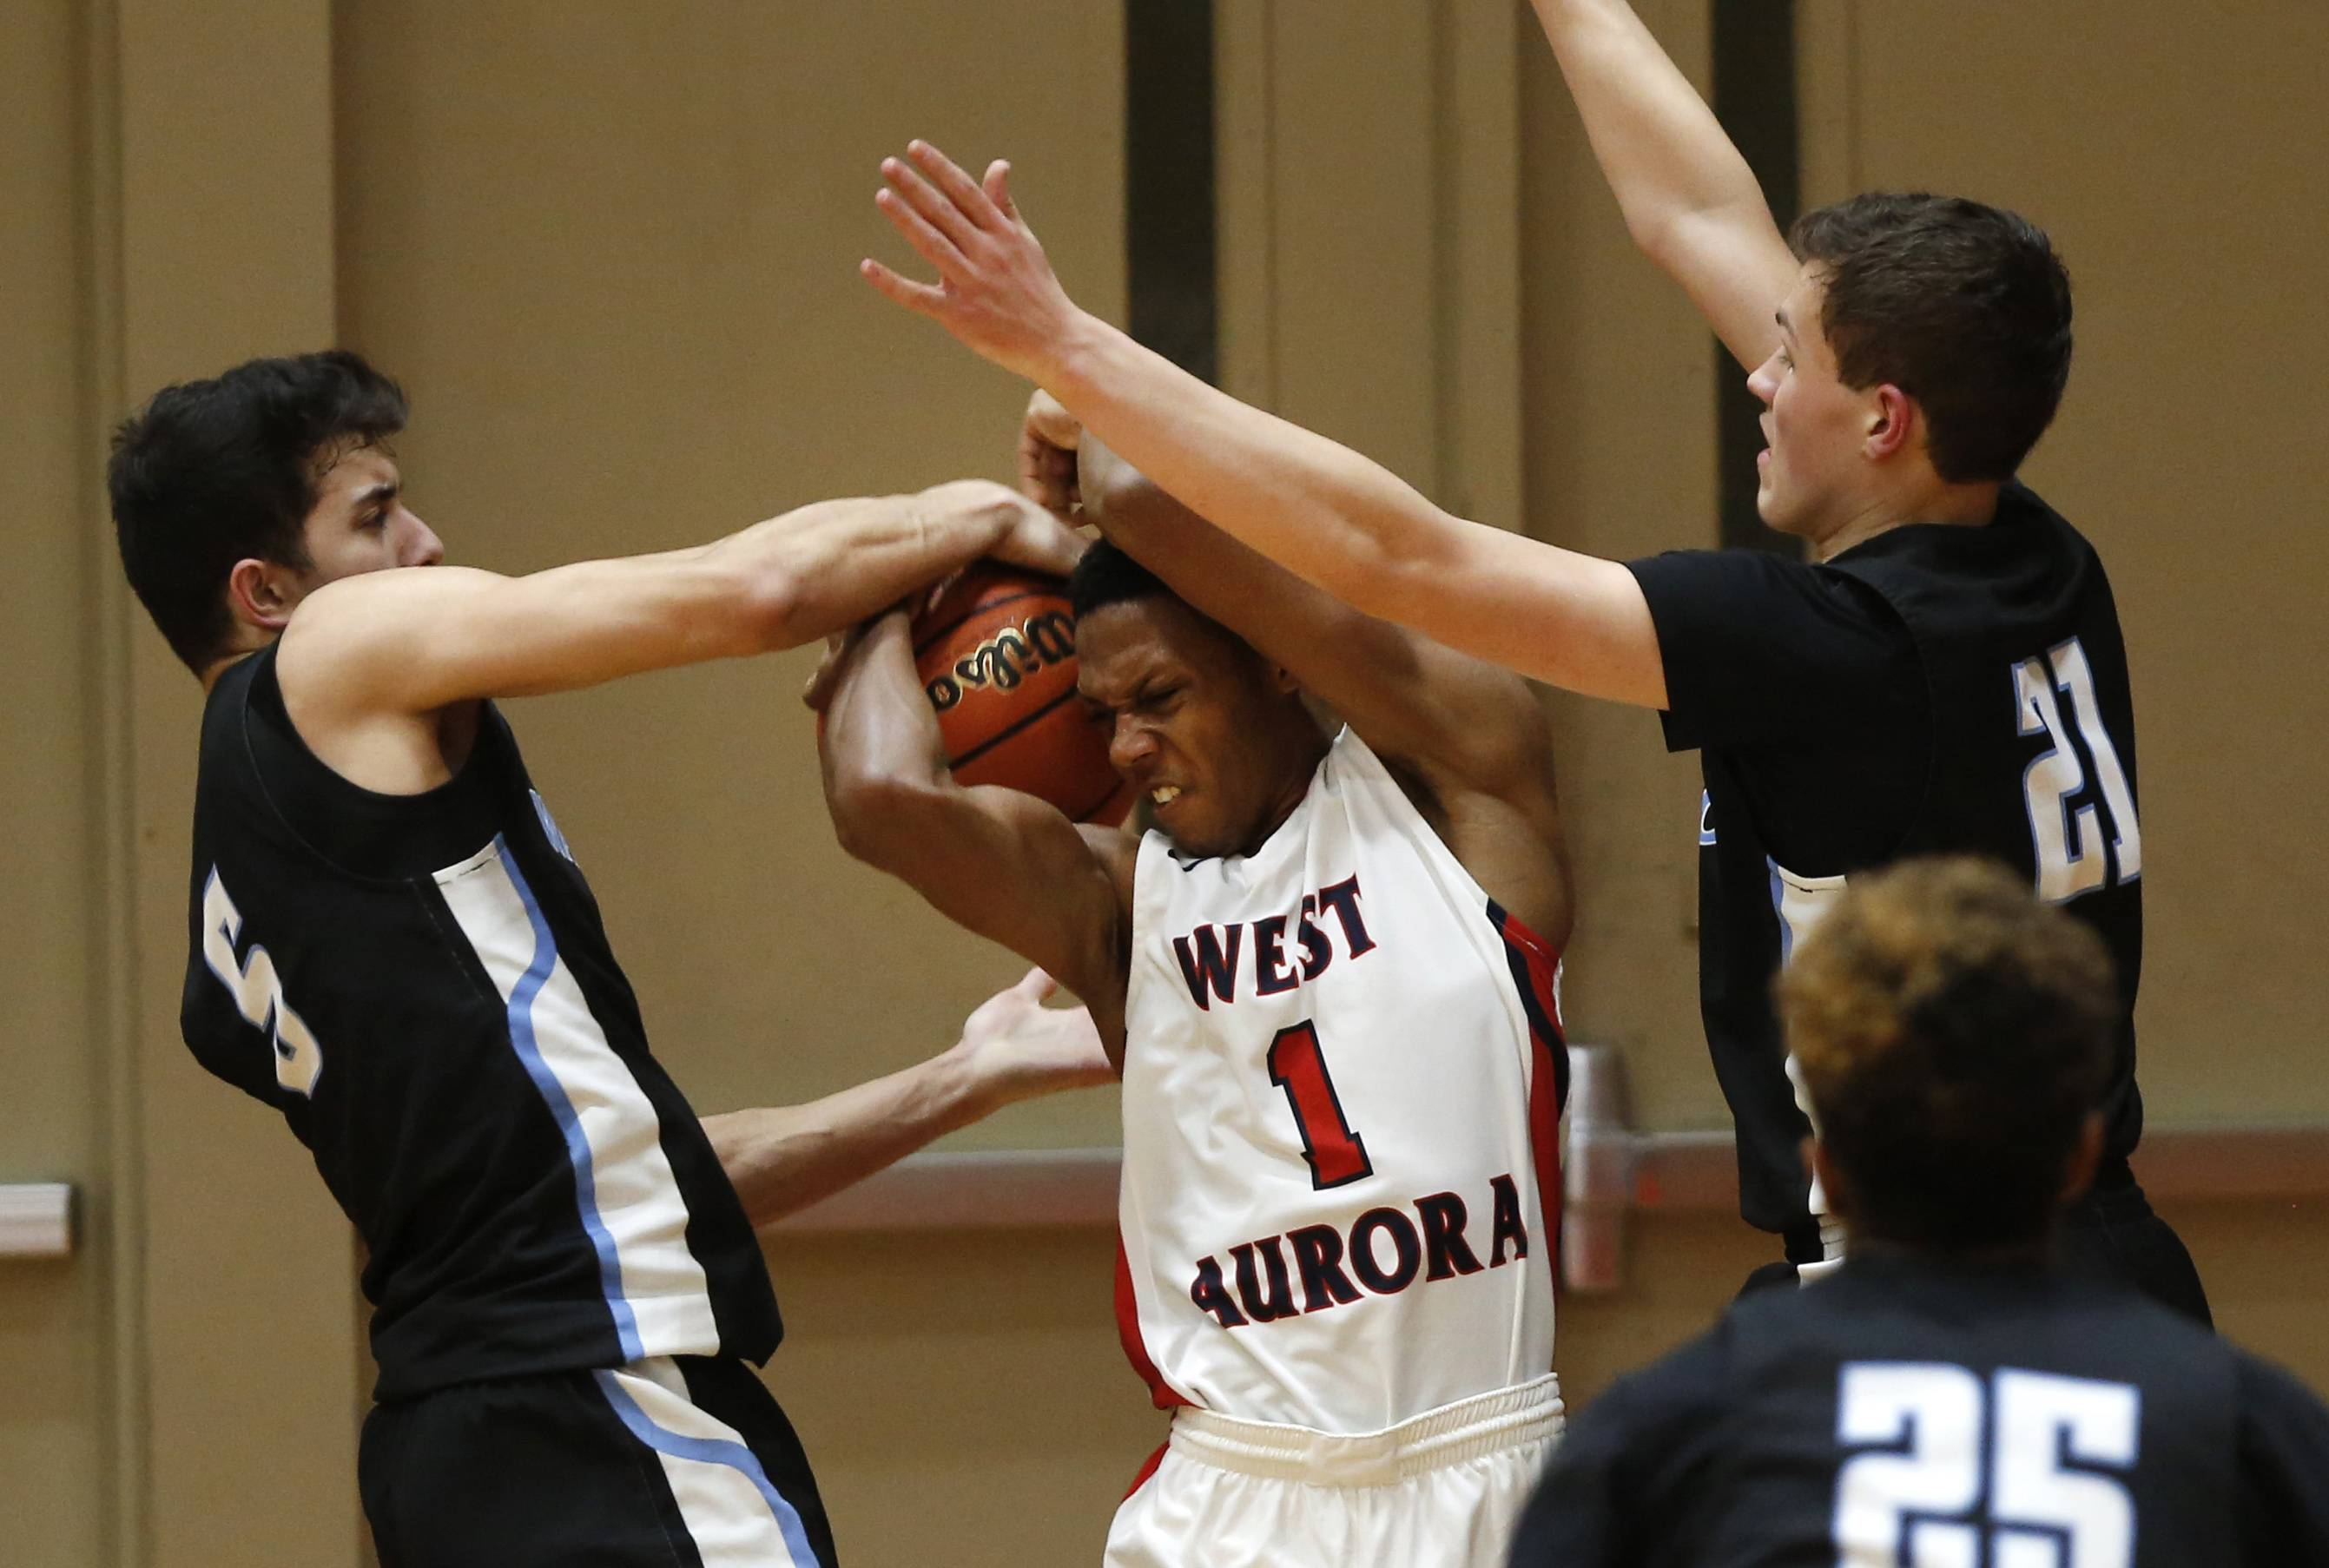 West Aurora's Traevon Brown (1) is double teamed by Willowbrook's Sikander Zafar (5) and Matas Masys (21) during the 25th annual Jim & Sylvia Roberts Night of Hoops boys basketball game at Batavia High School.